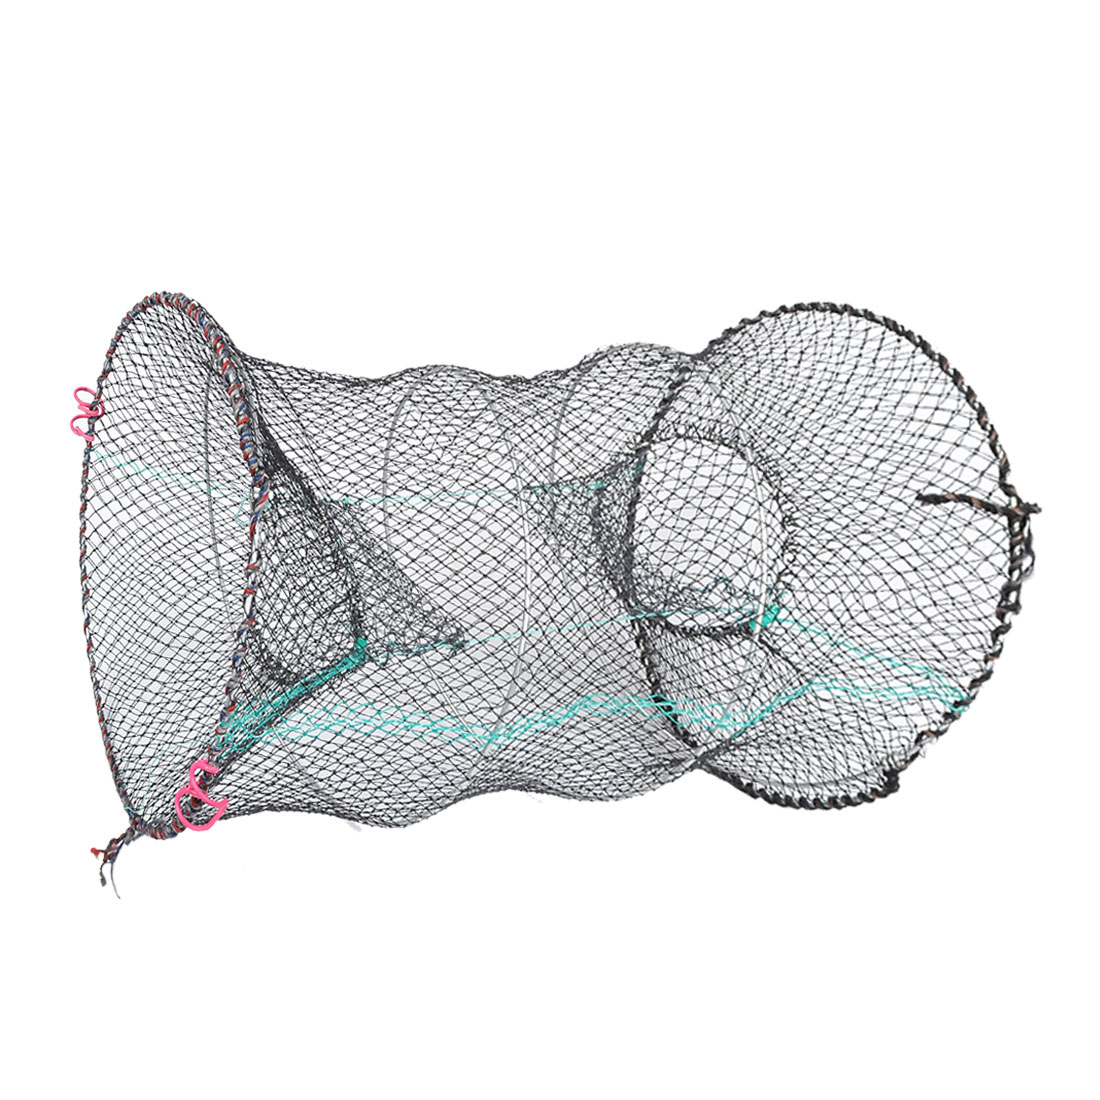 "24.2"" Tall Lobster Crawfish Shrimp Cast Fishing Keep Net Cage"